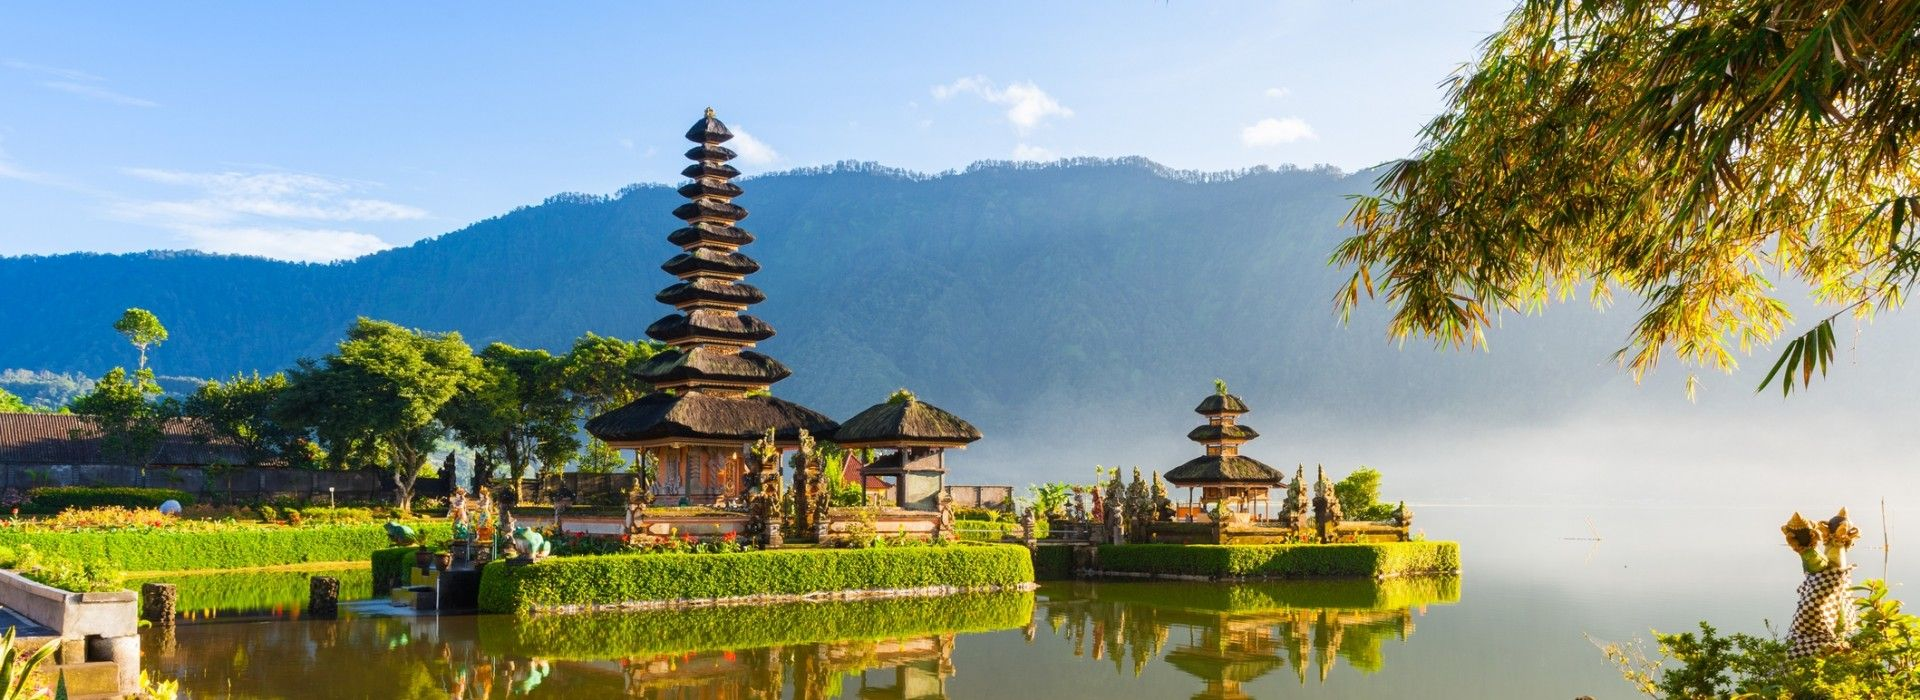 Cultural, religious and historic sites Tours in Jakarta